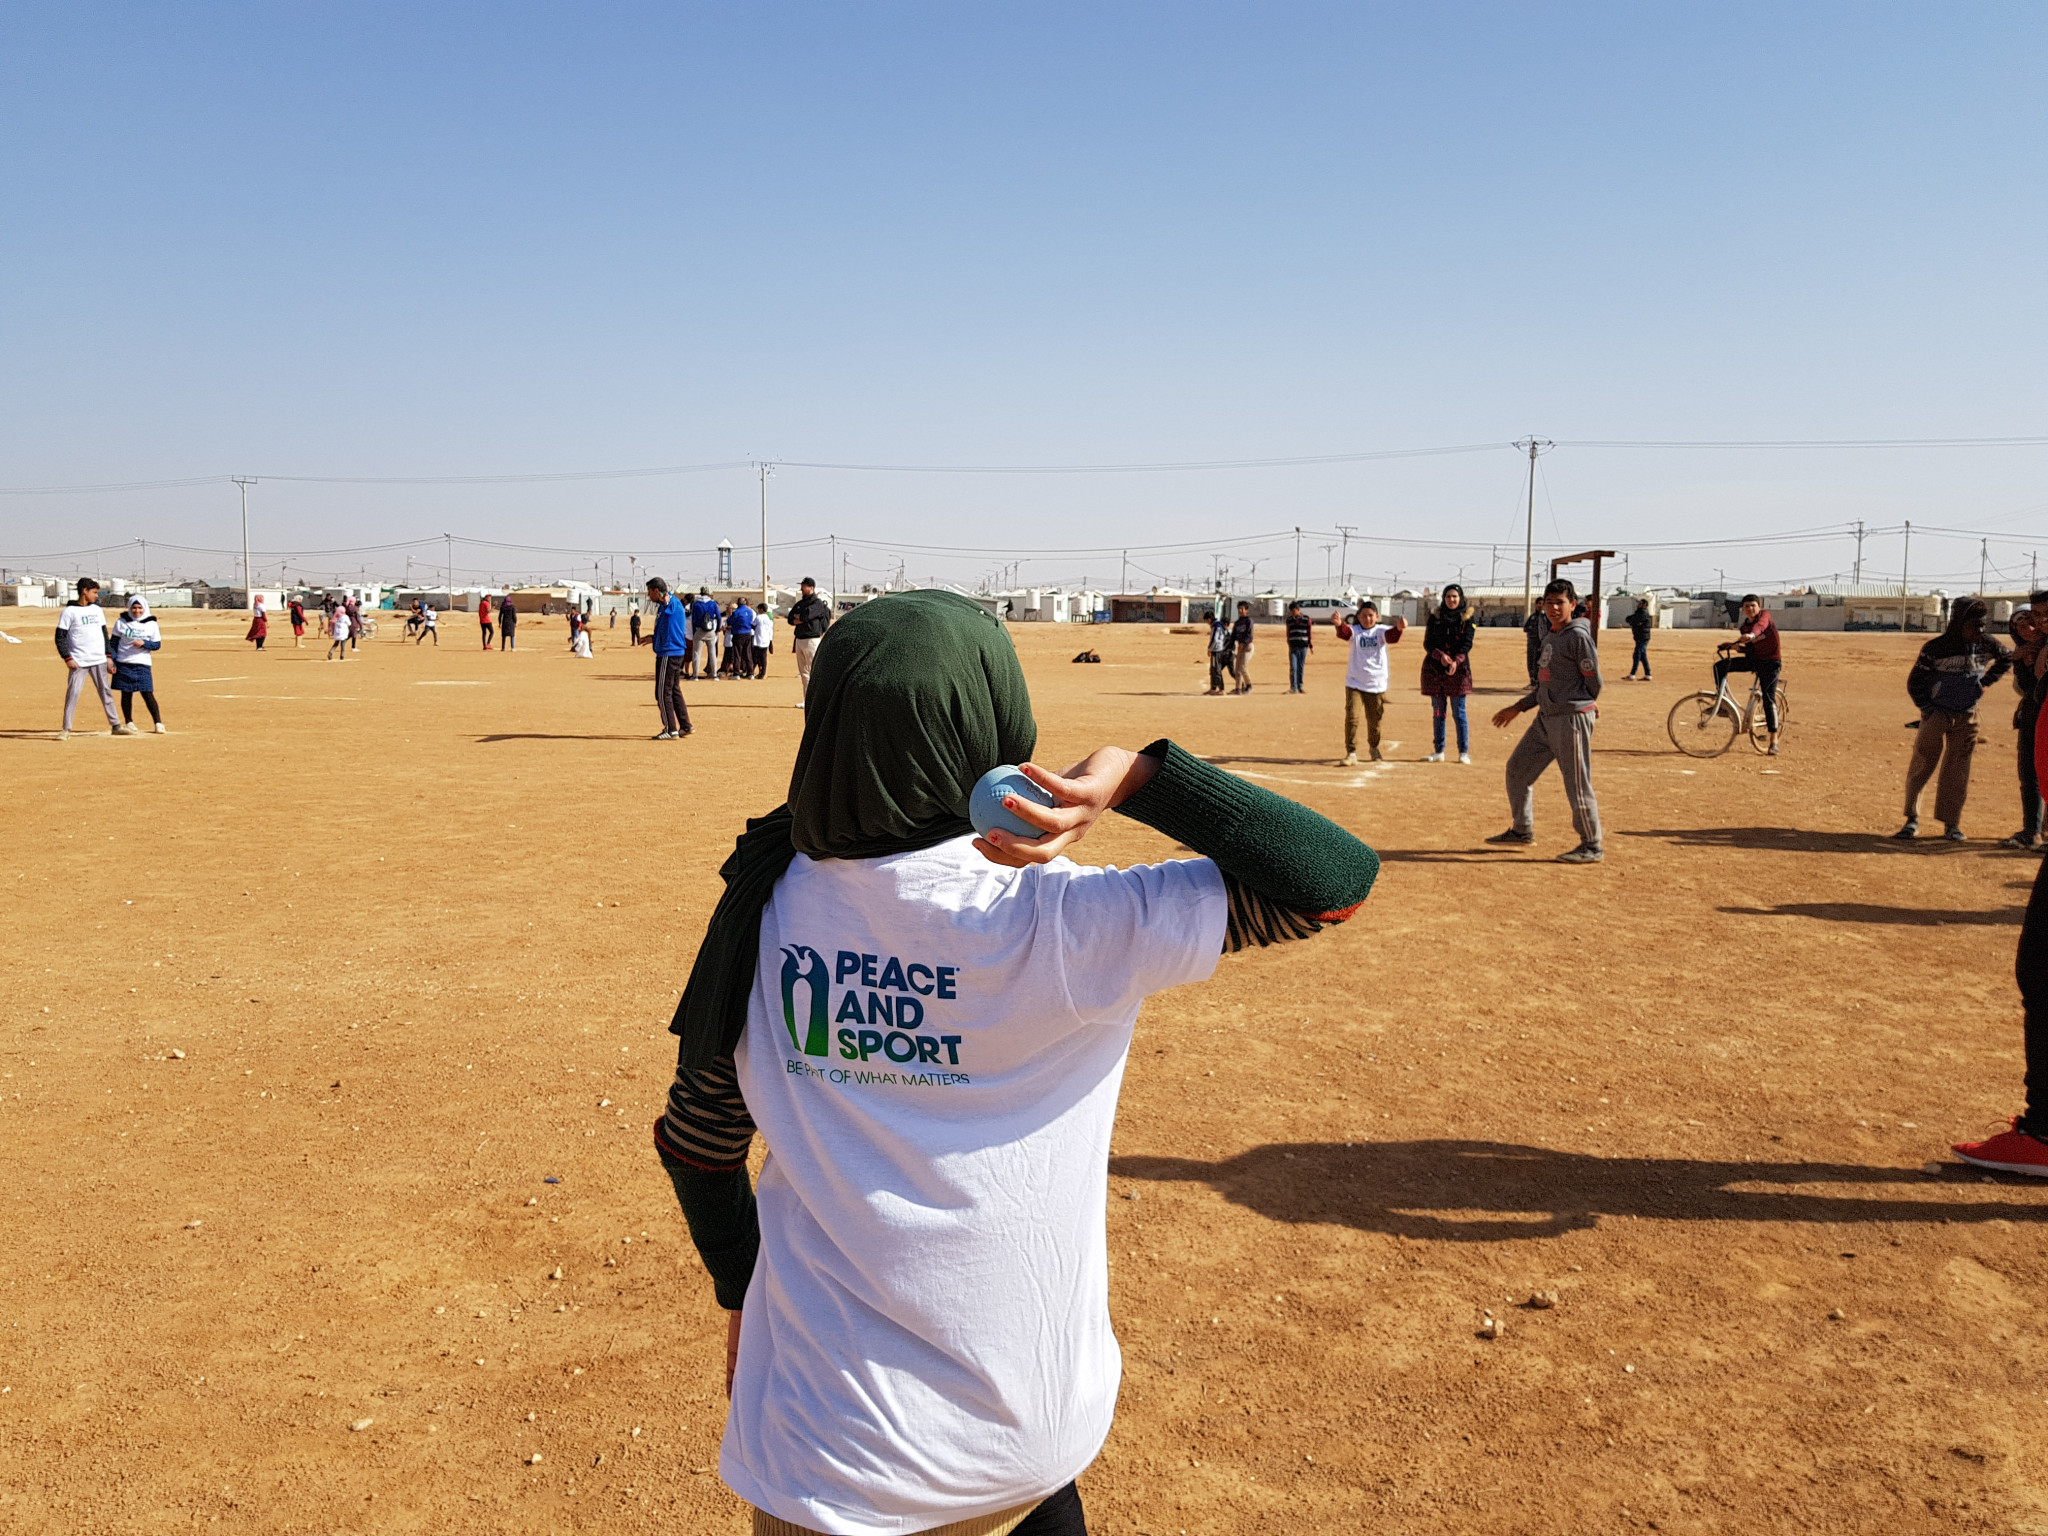 Fraccari believes Baseball5 can offer refugees new opportunities